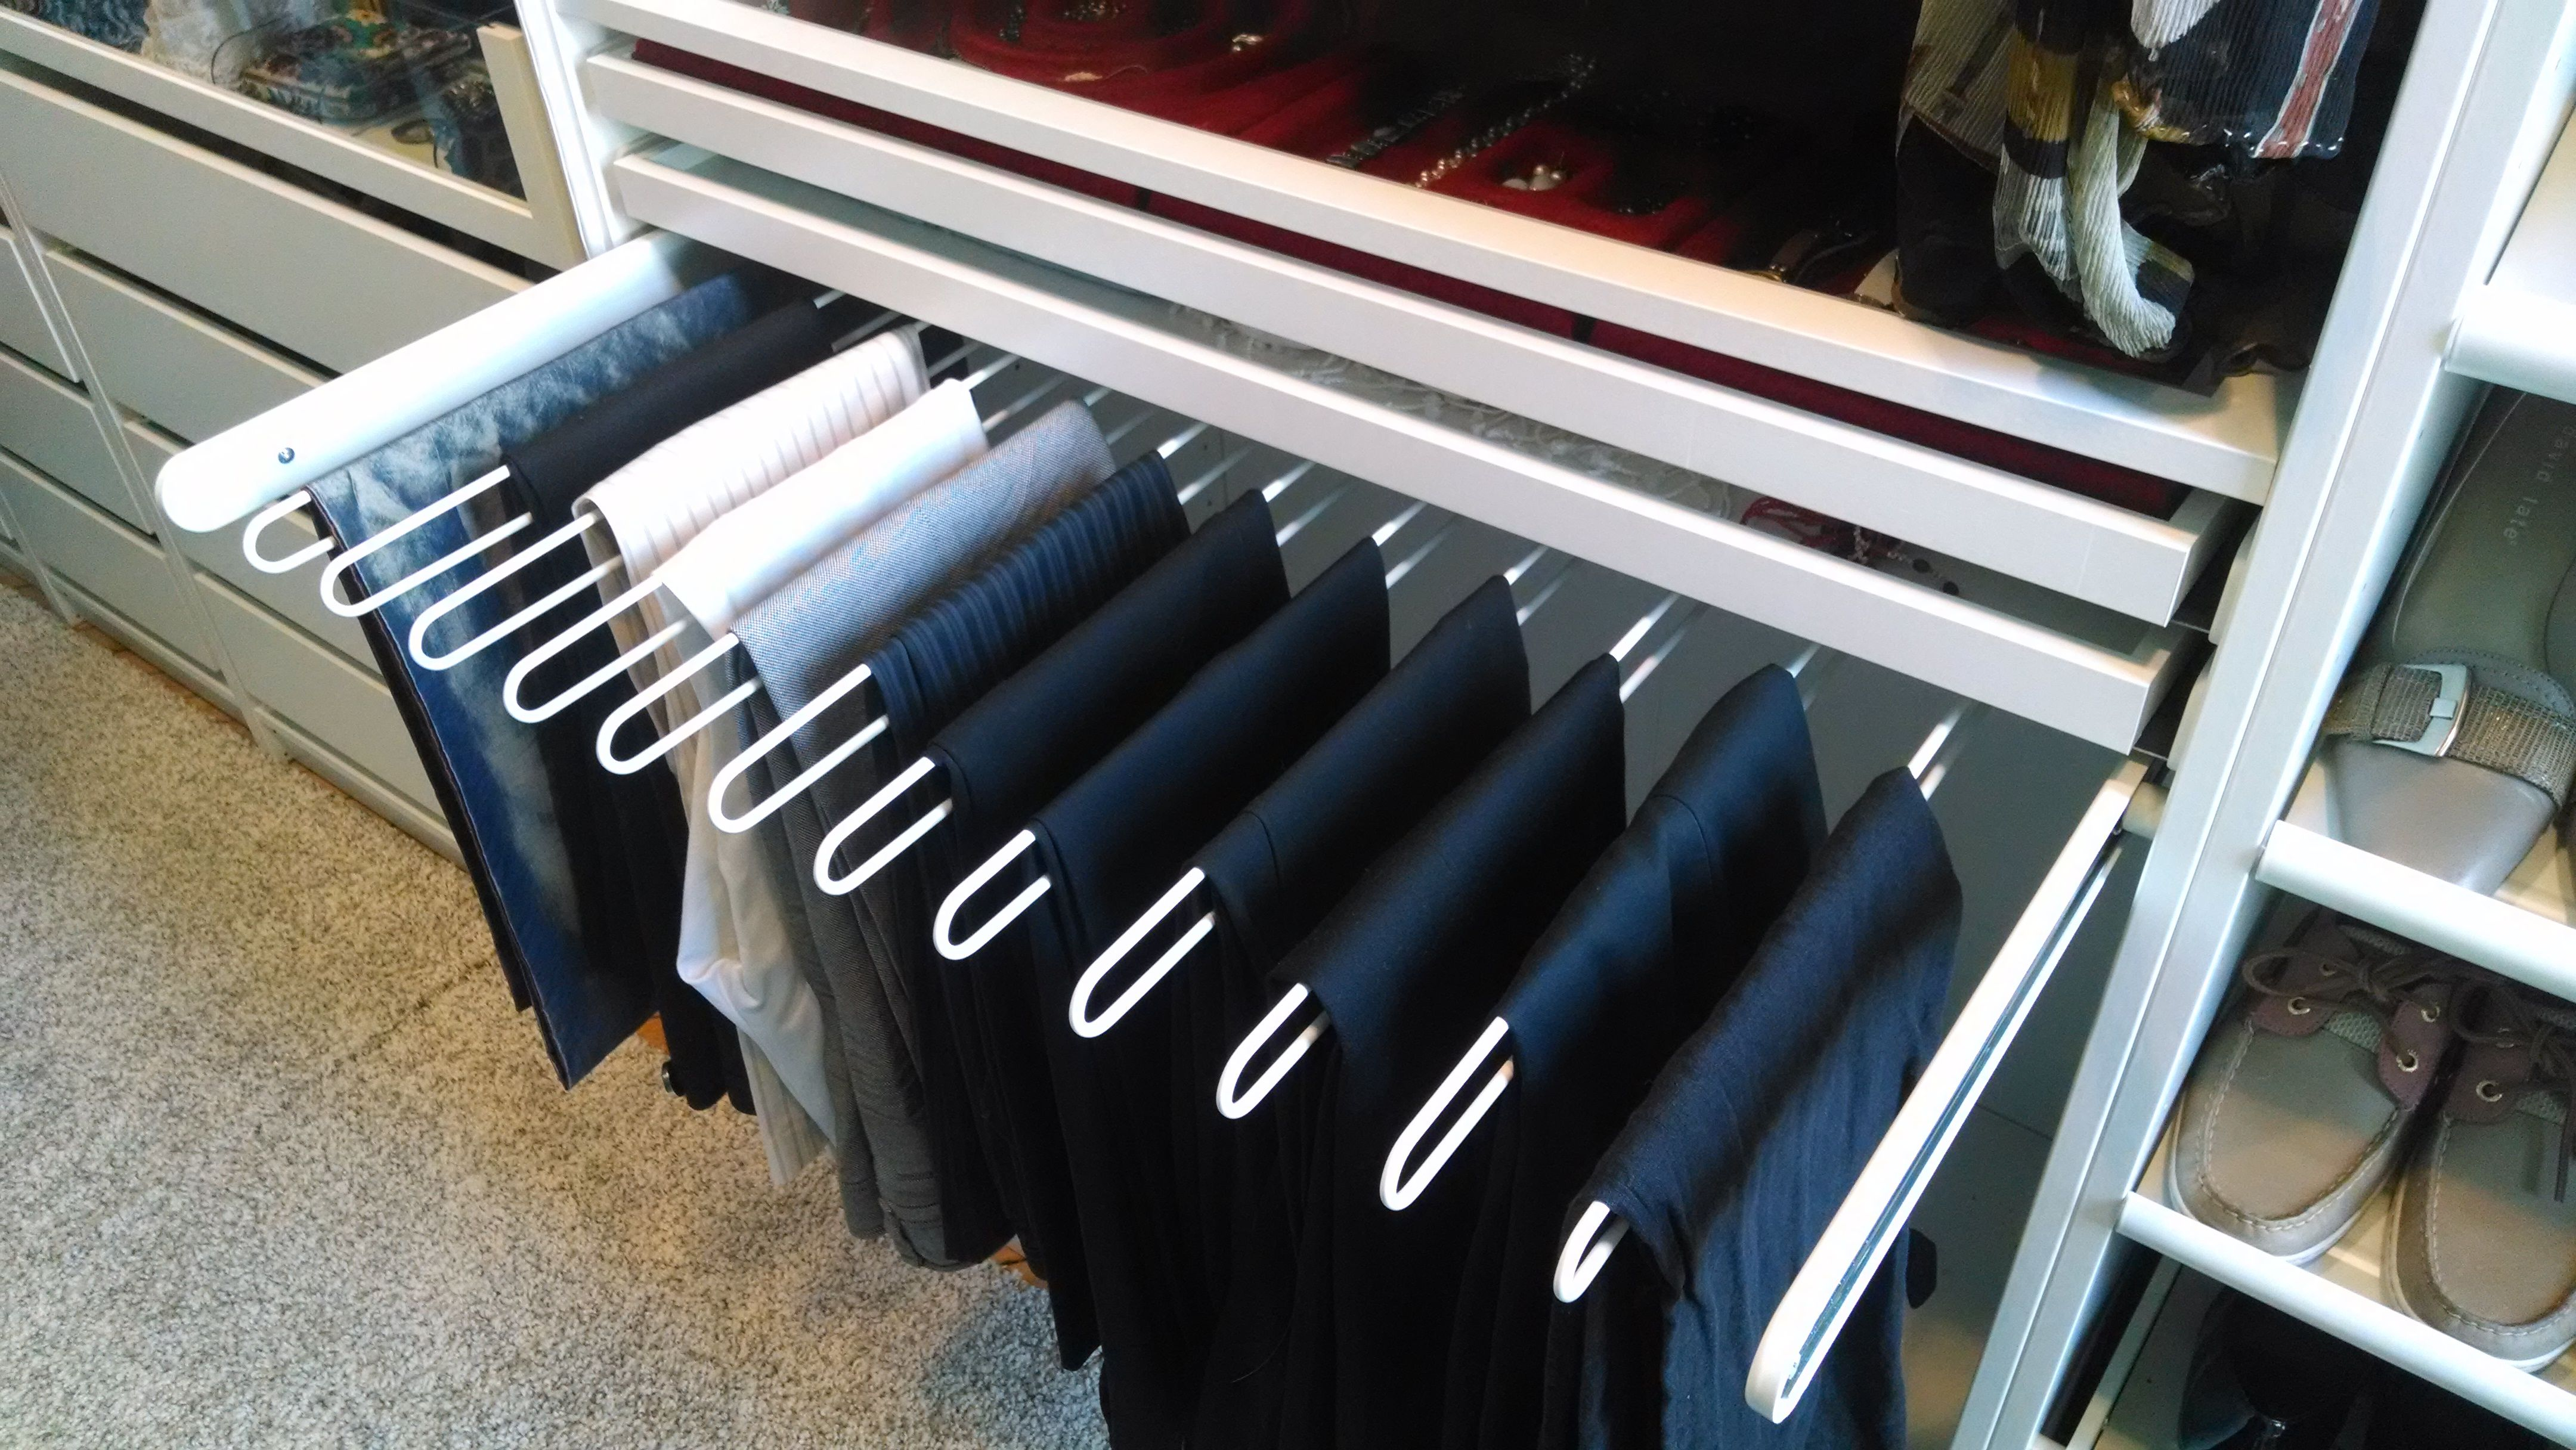 Forget About Folding U2013 The KOMPLEMENT Pants Hanger Lets You View Your  Choices With Ease!